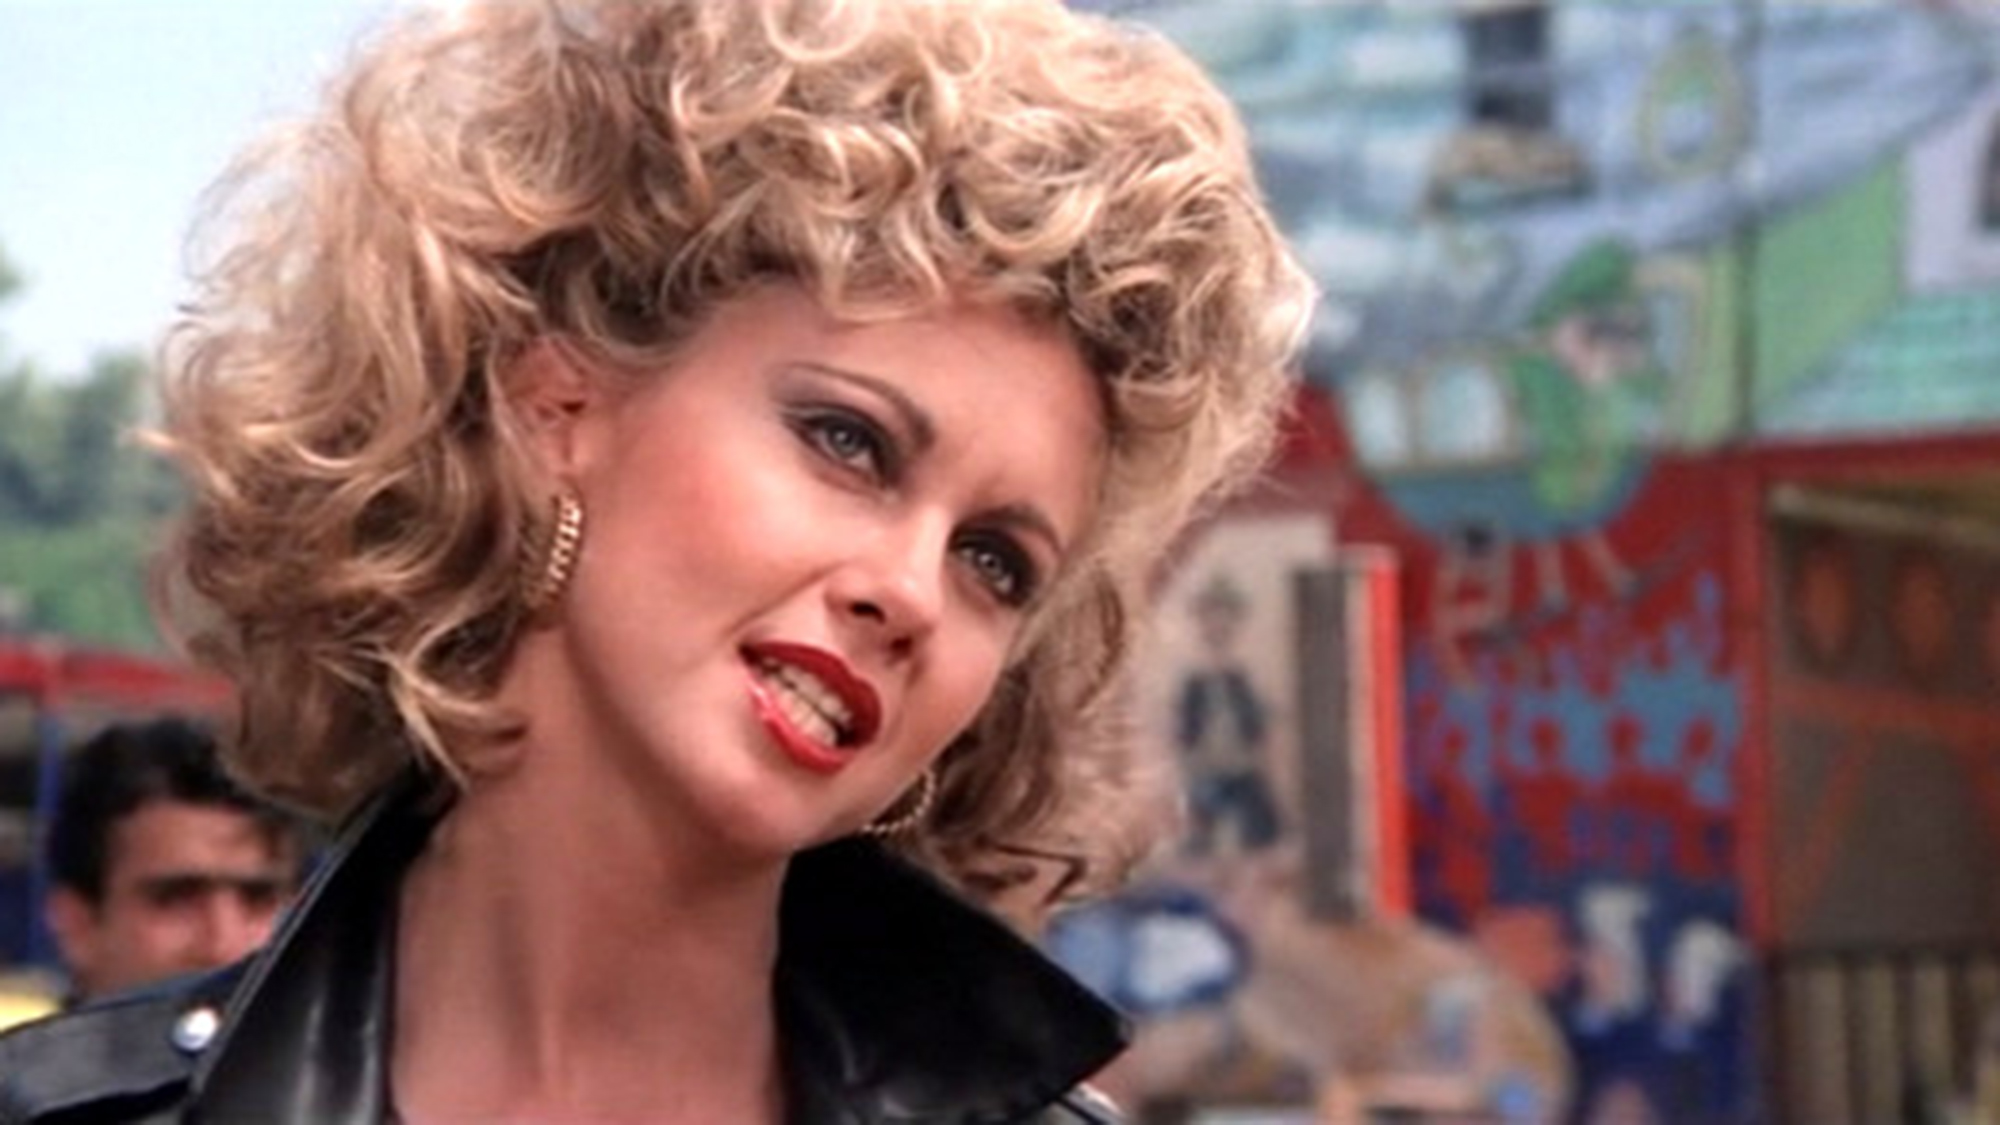 When was grease the movie made